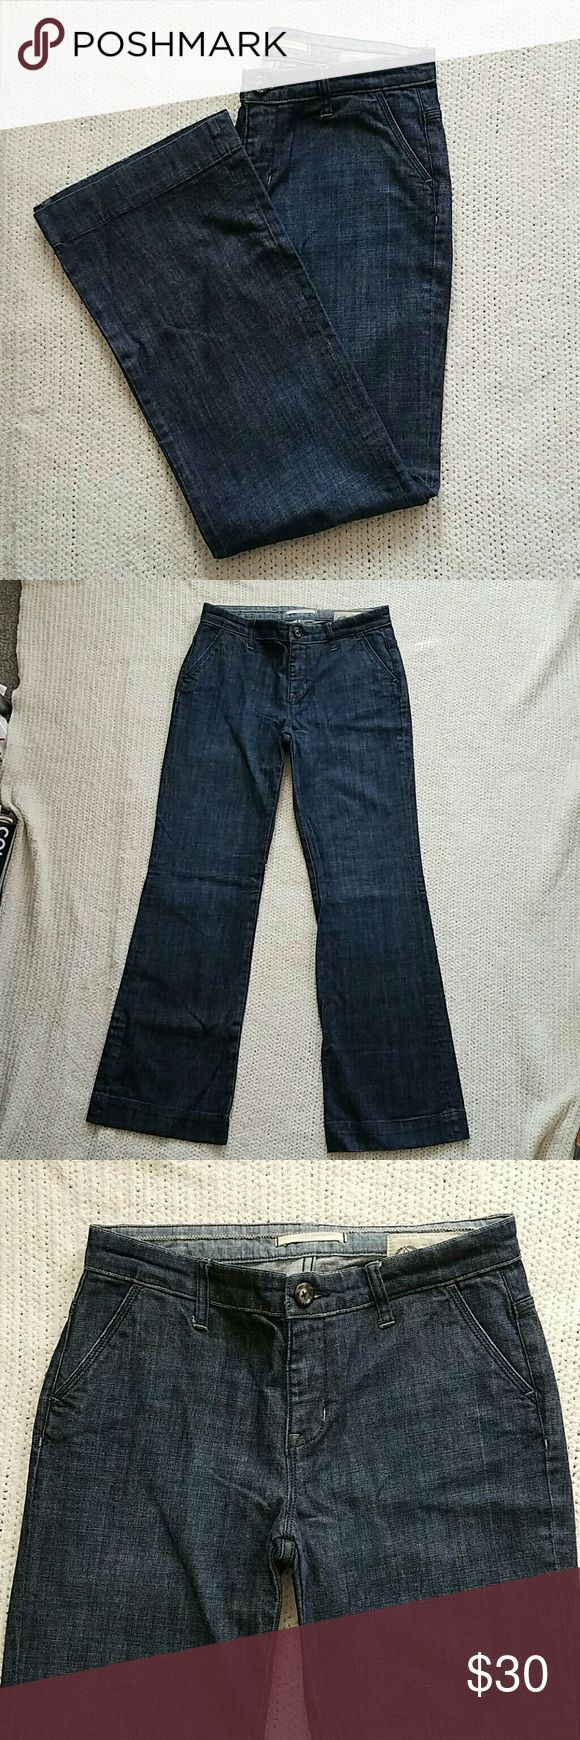 Gap trouser jeans Gap wide leg trouser jeans. 32 inch leg length. Dark wash. Worn a couple of times, great condition still. No snags, rips or holes.  Animal and smoke free home. GAP Jeans Flare & Wide Leg